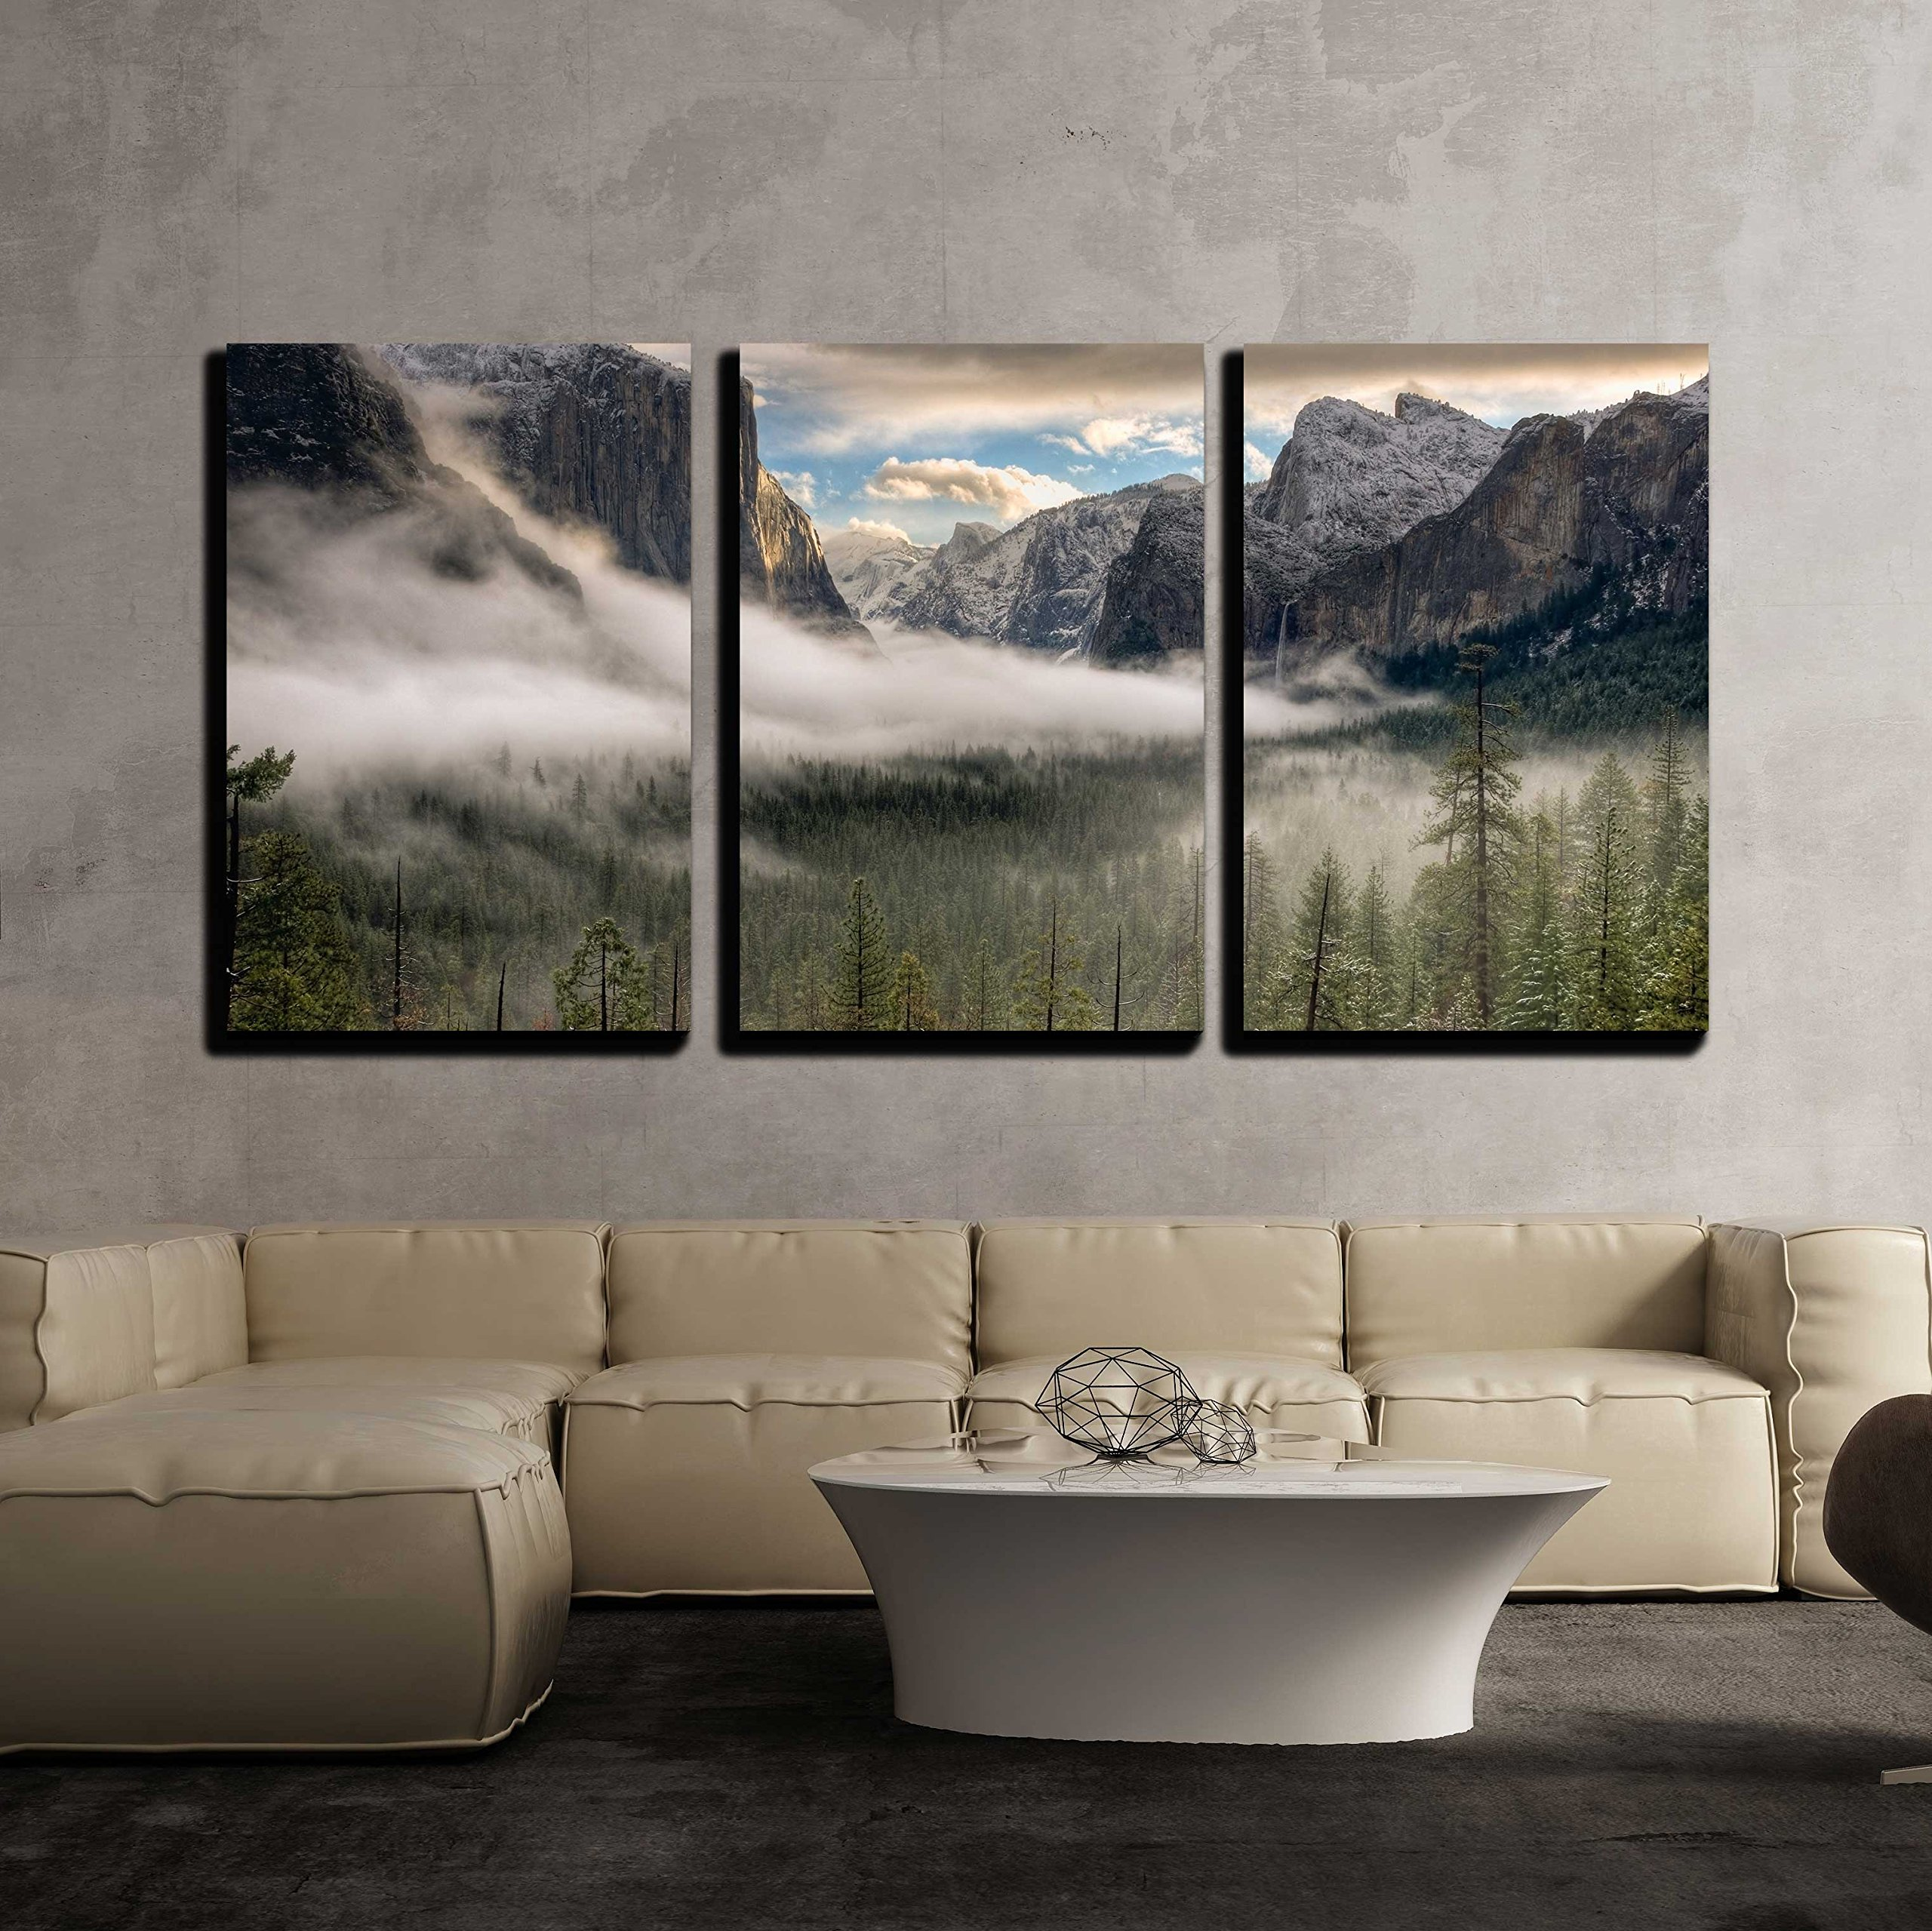 "wall26 - 3 Piece Canvas Wall Art - The sun peaks over the Sierras for its first glimpse of the Yosemite Valley. - Modern Home Decor Stretched and Framed Ready to Hang - 24""x36""x3 Panels"